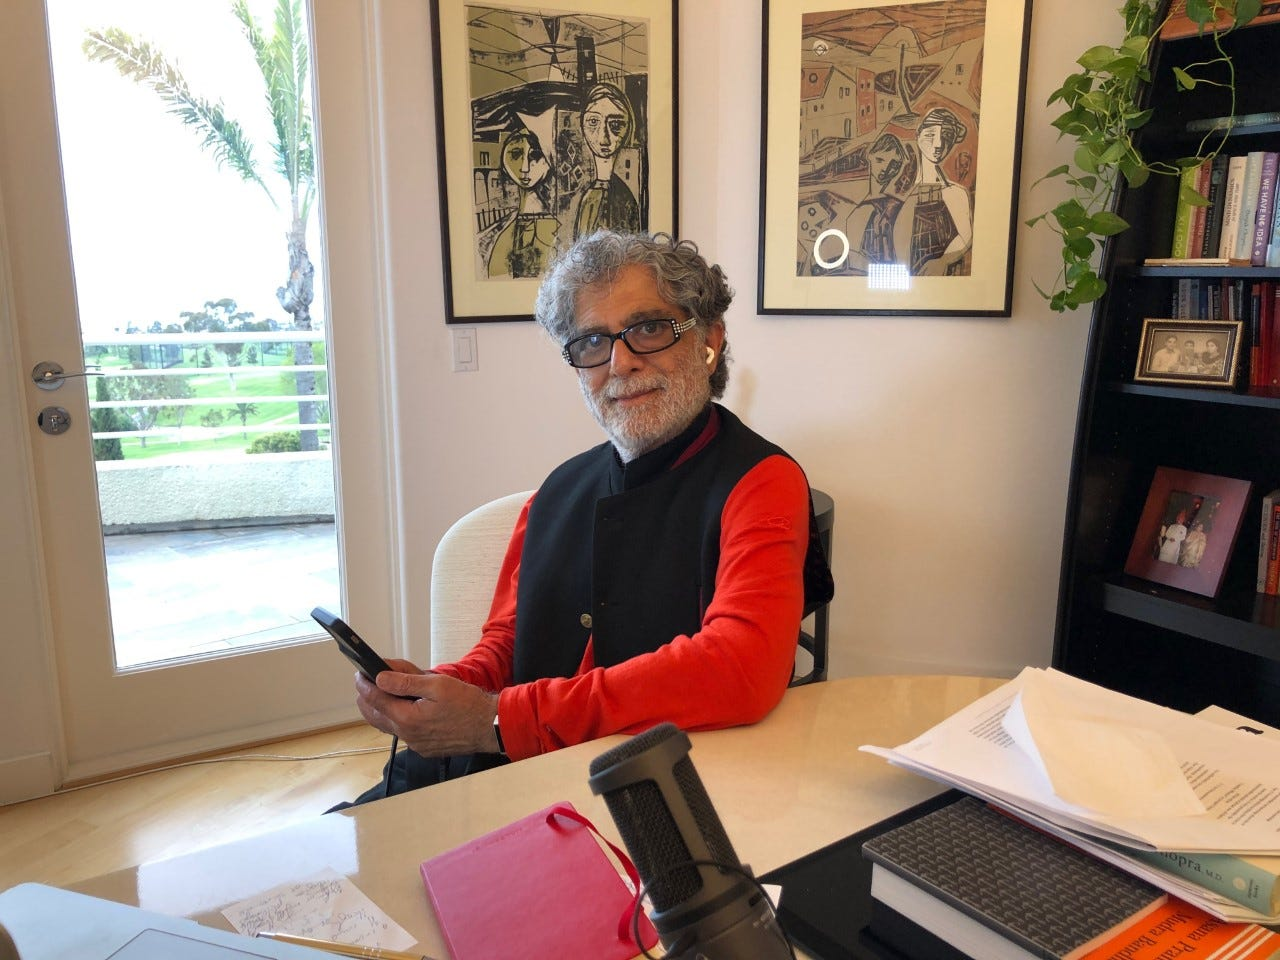 Quarantine Diaries: Deepak Chopra is doubling his yoga routine and dreaming of his late parents